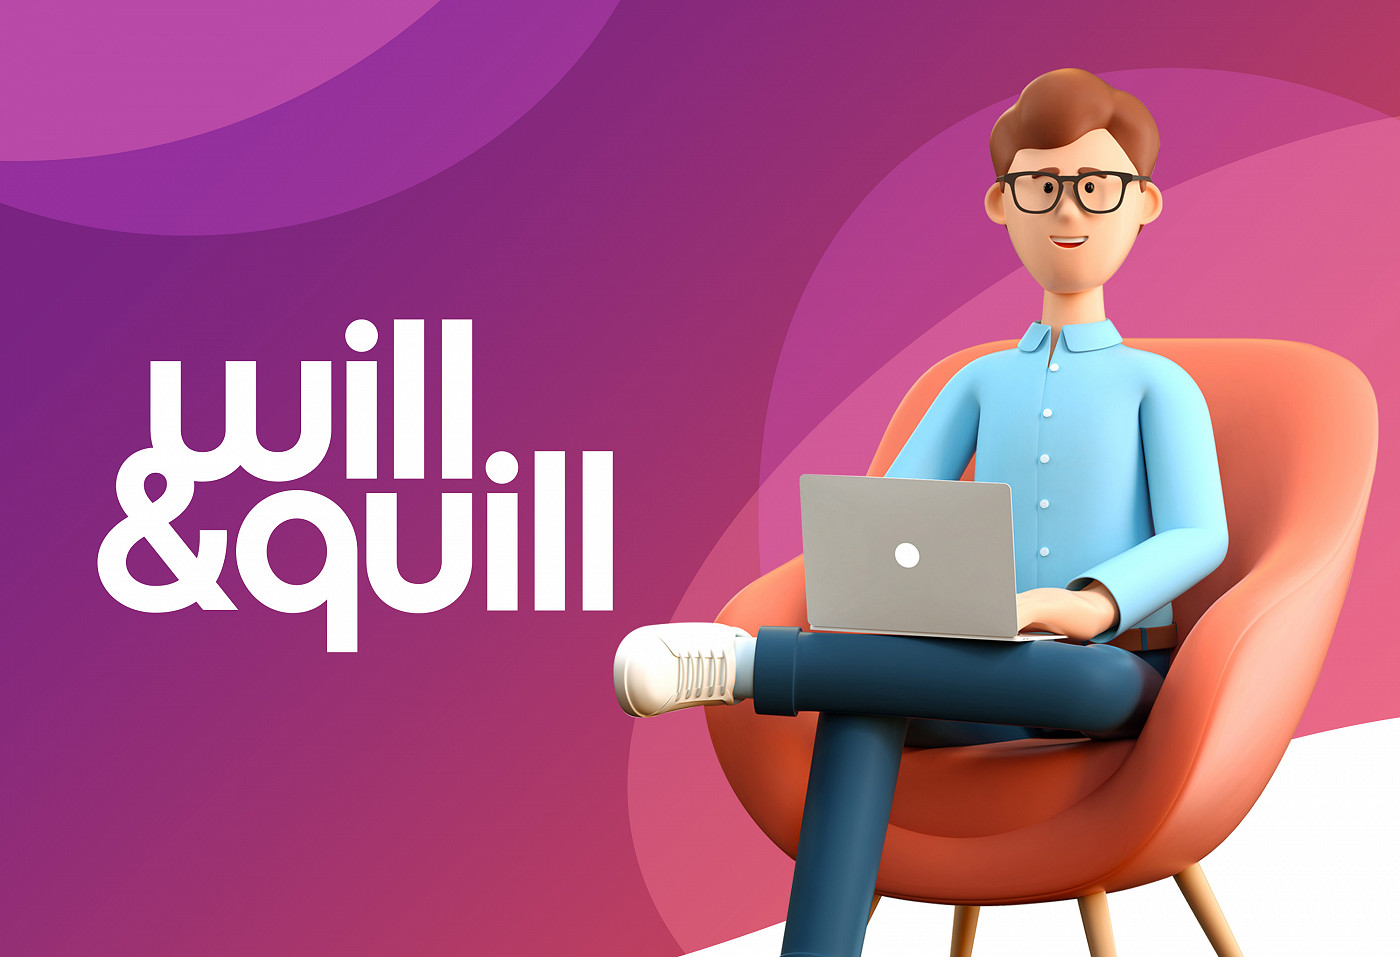 Will & Quill Website Design